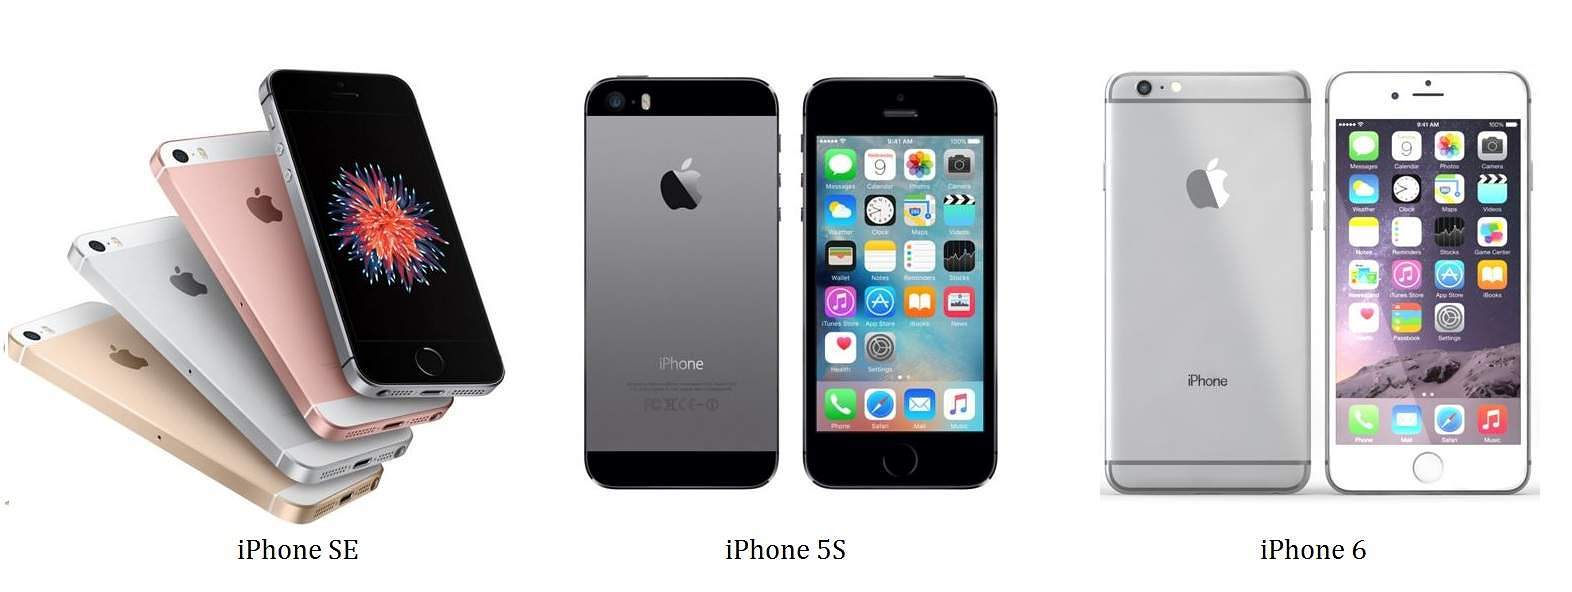 iphone 6 vs se size